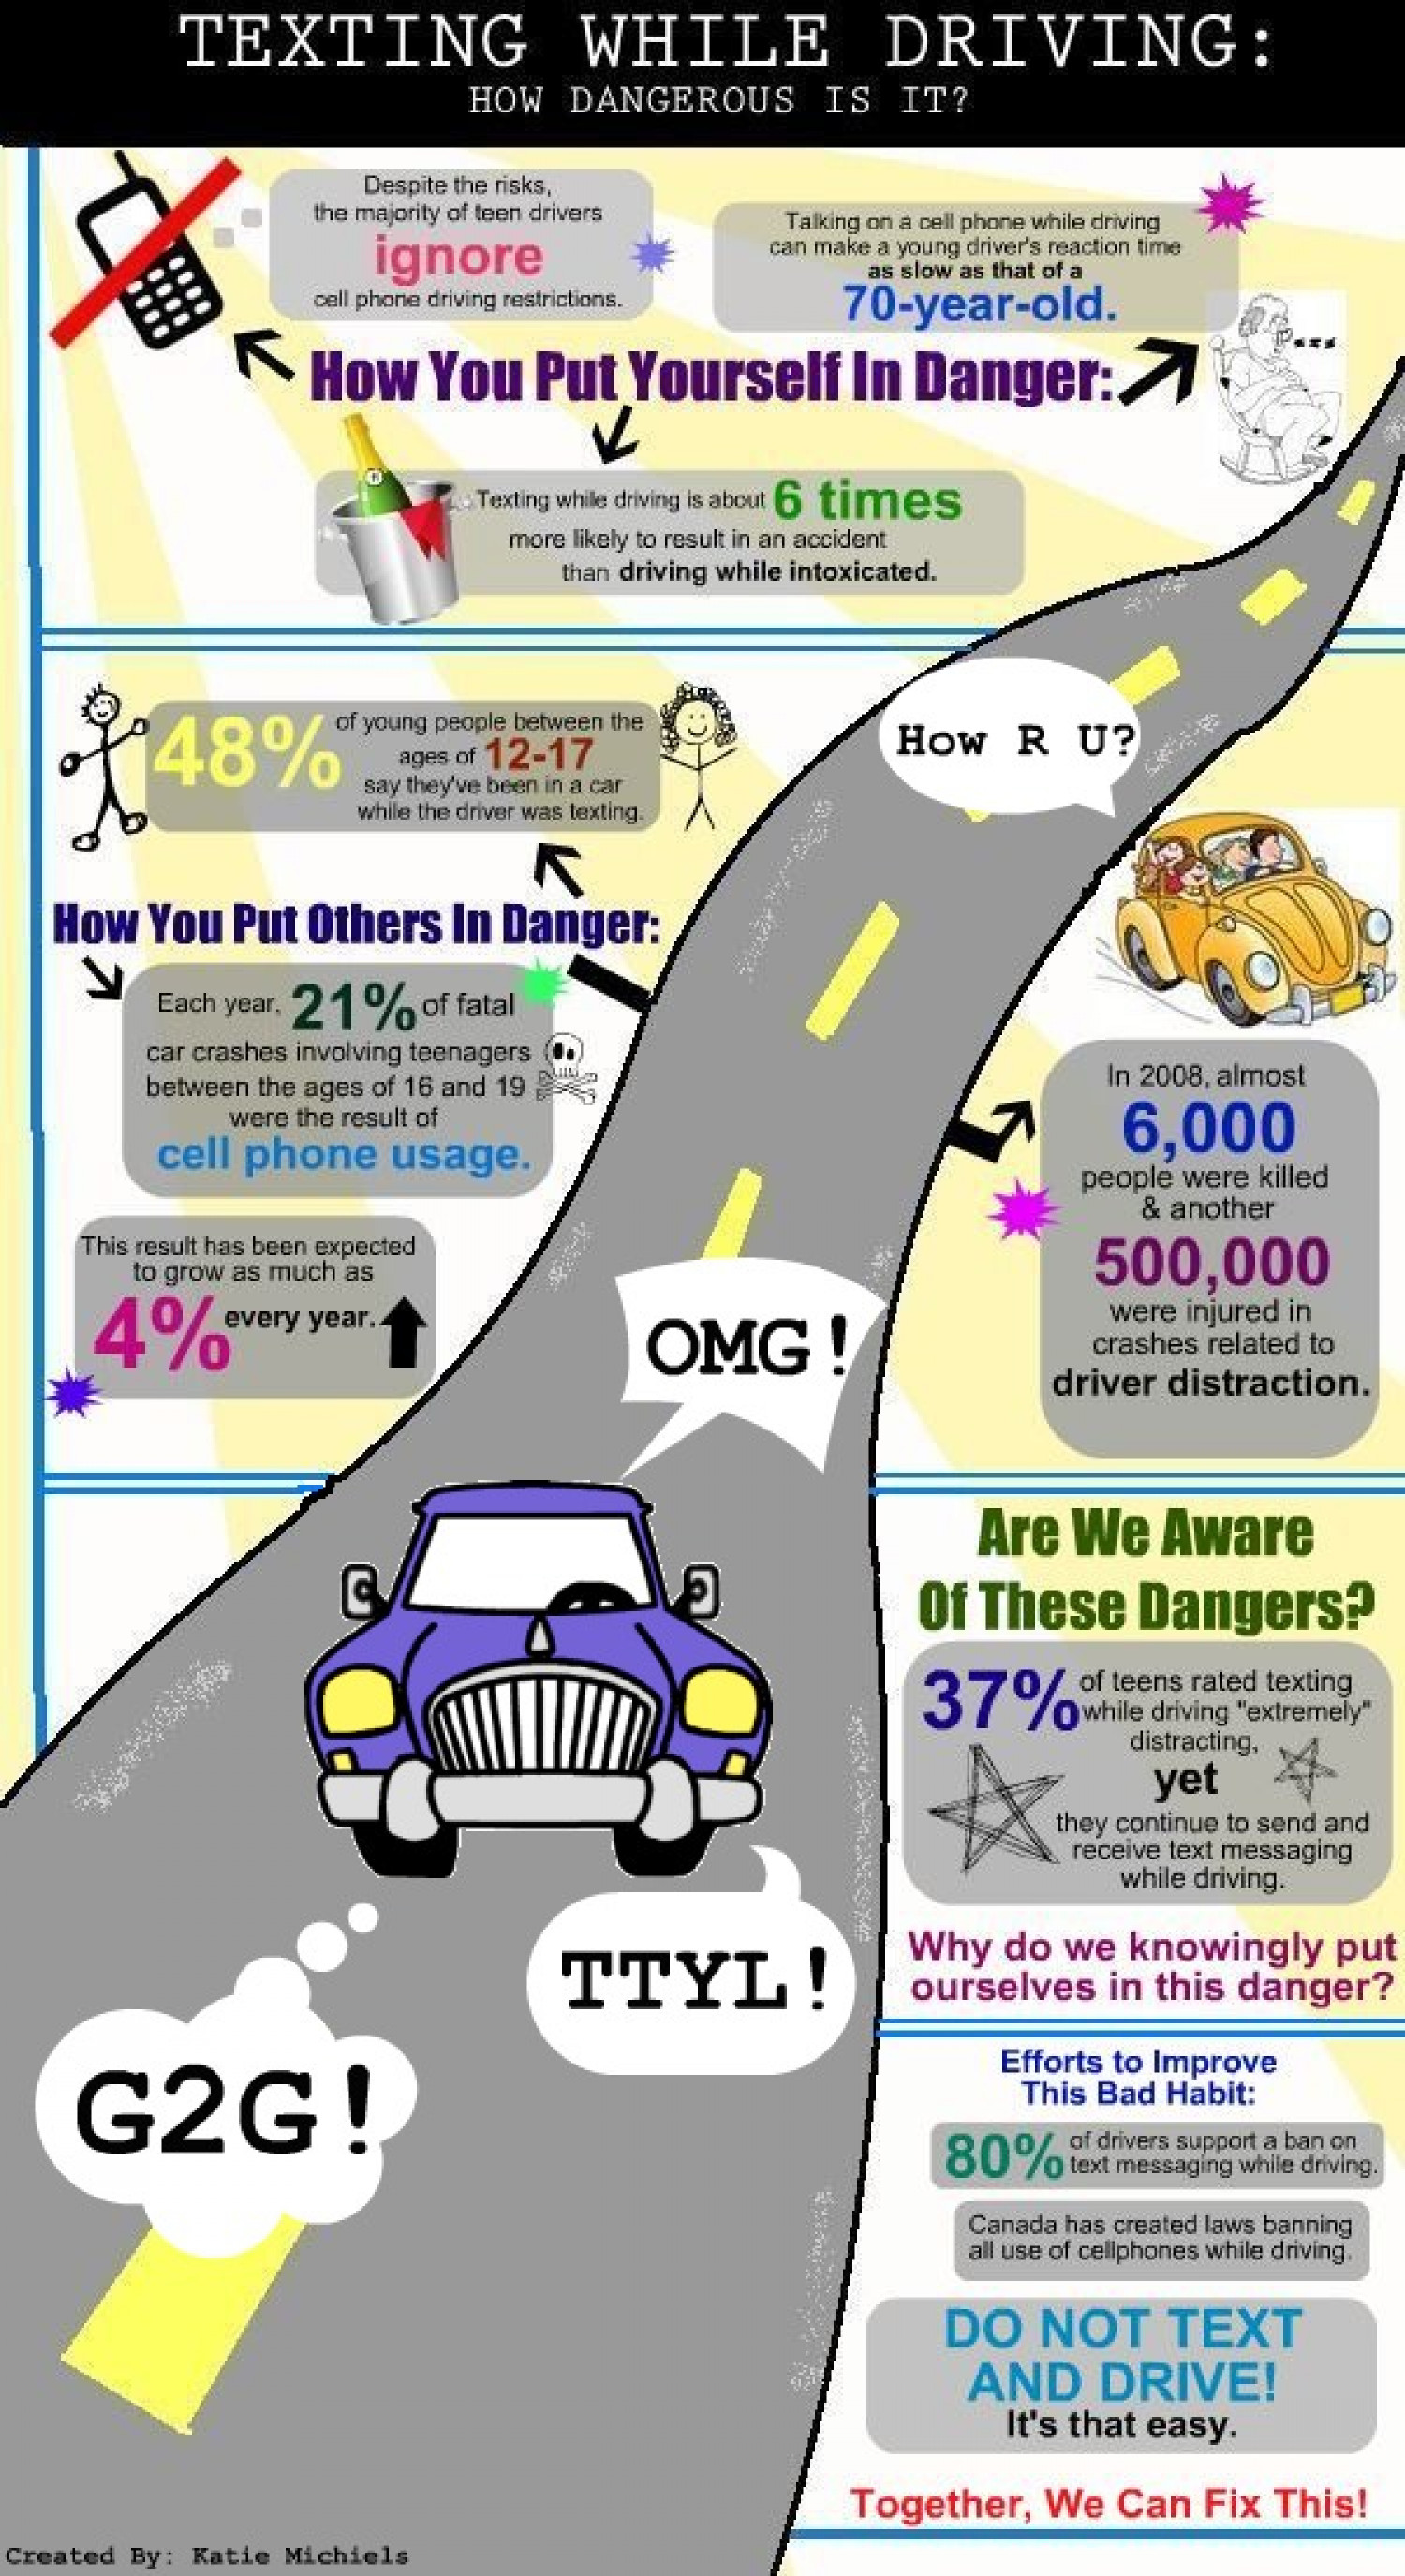 Texting While Driving: How Dangerous Is It? Infographic